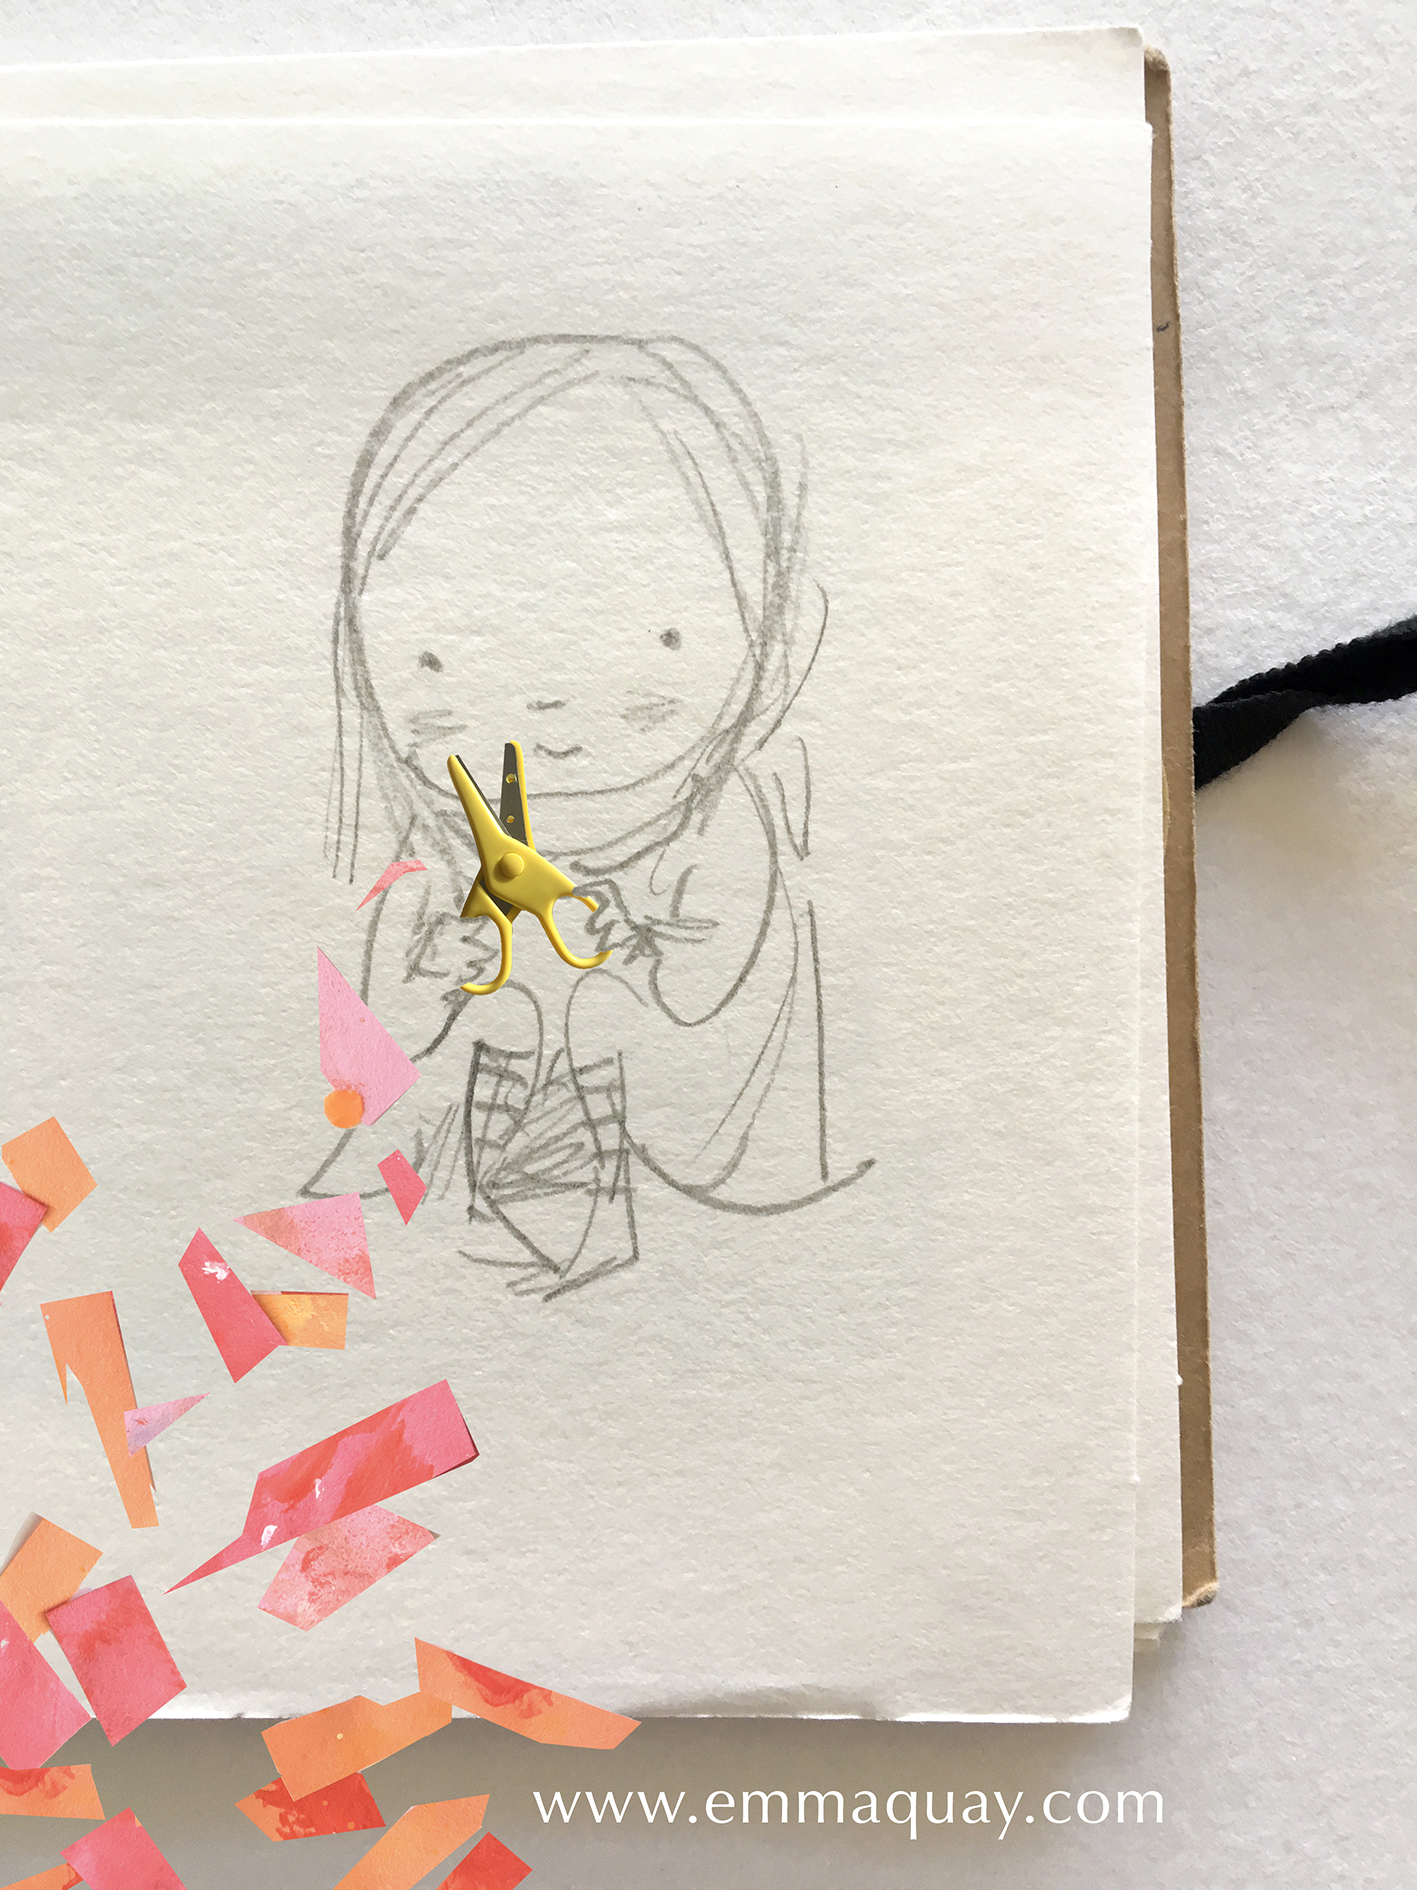 Today, I've been playing with scissors #emmaquaysketchbook